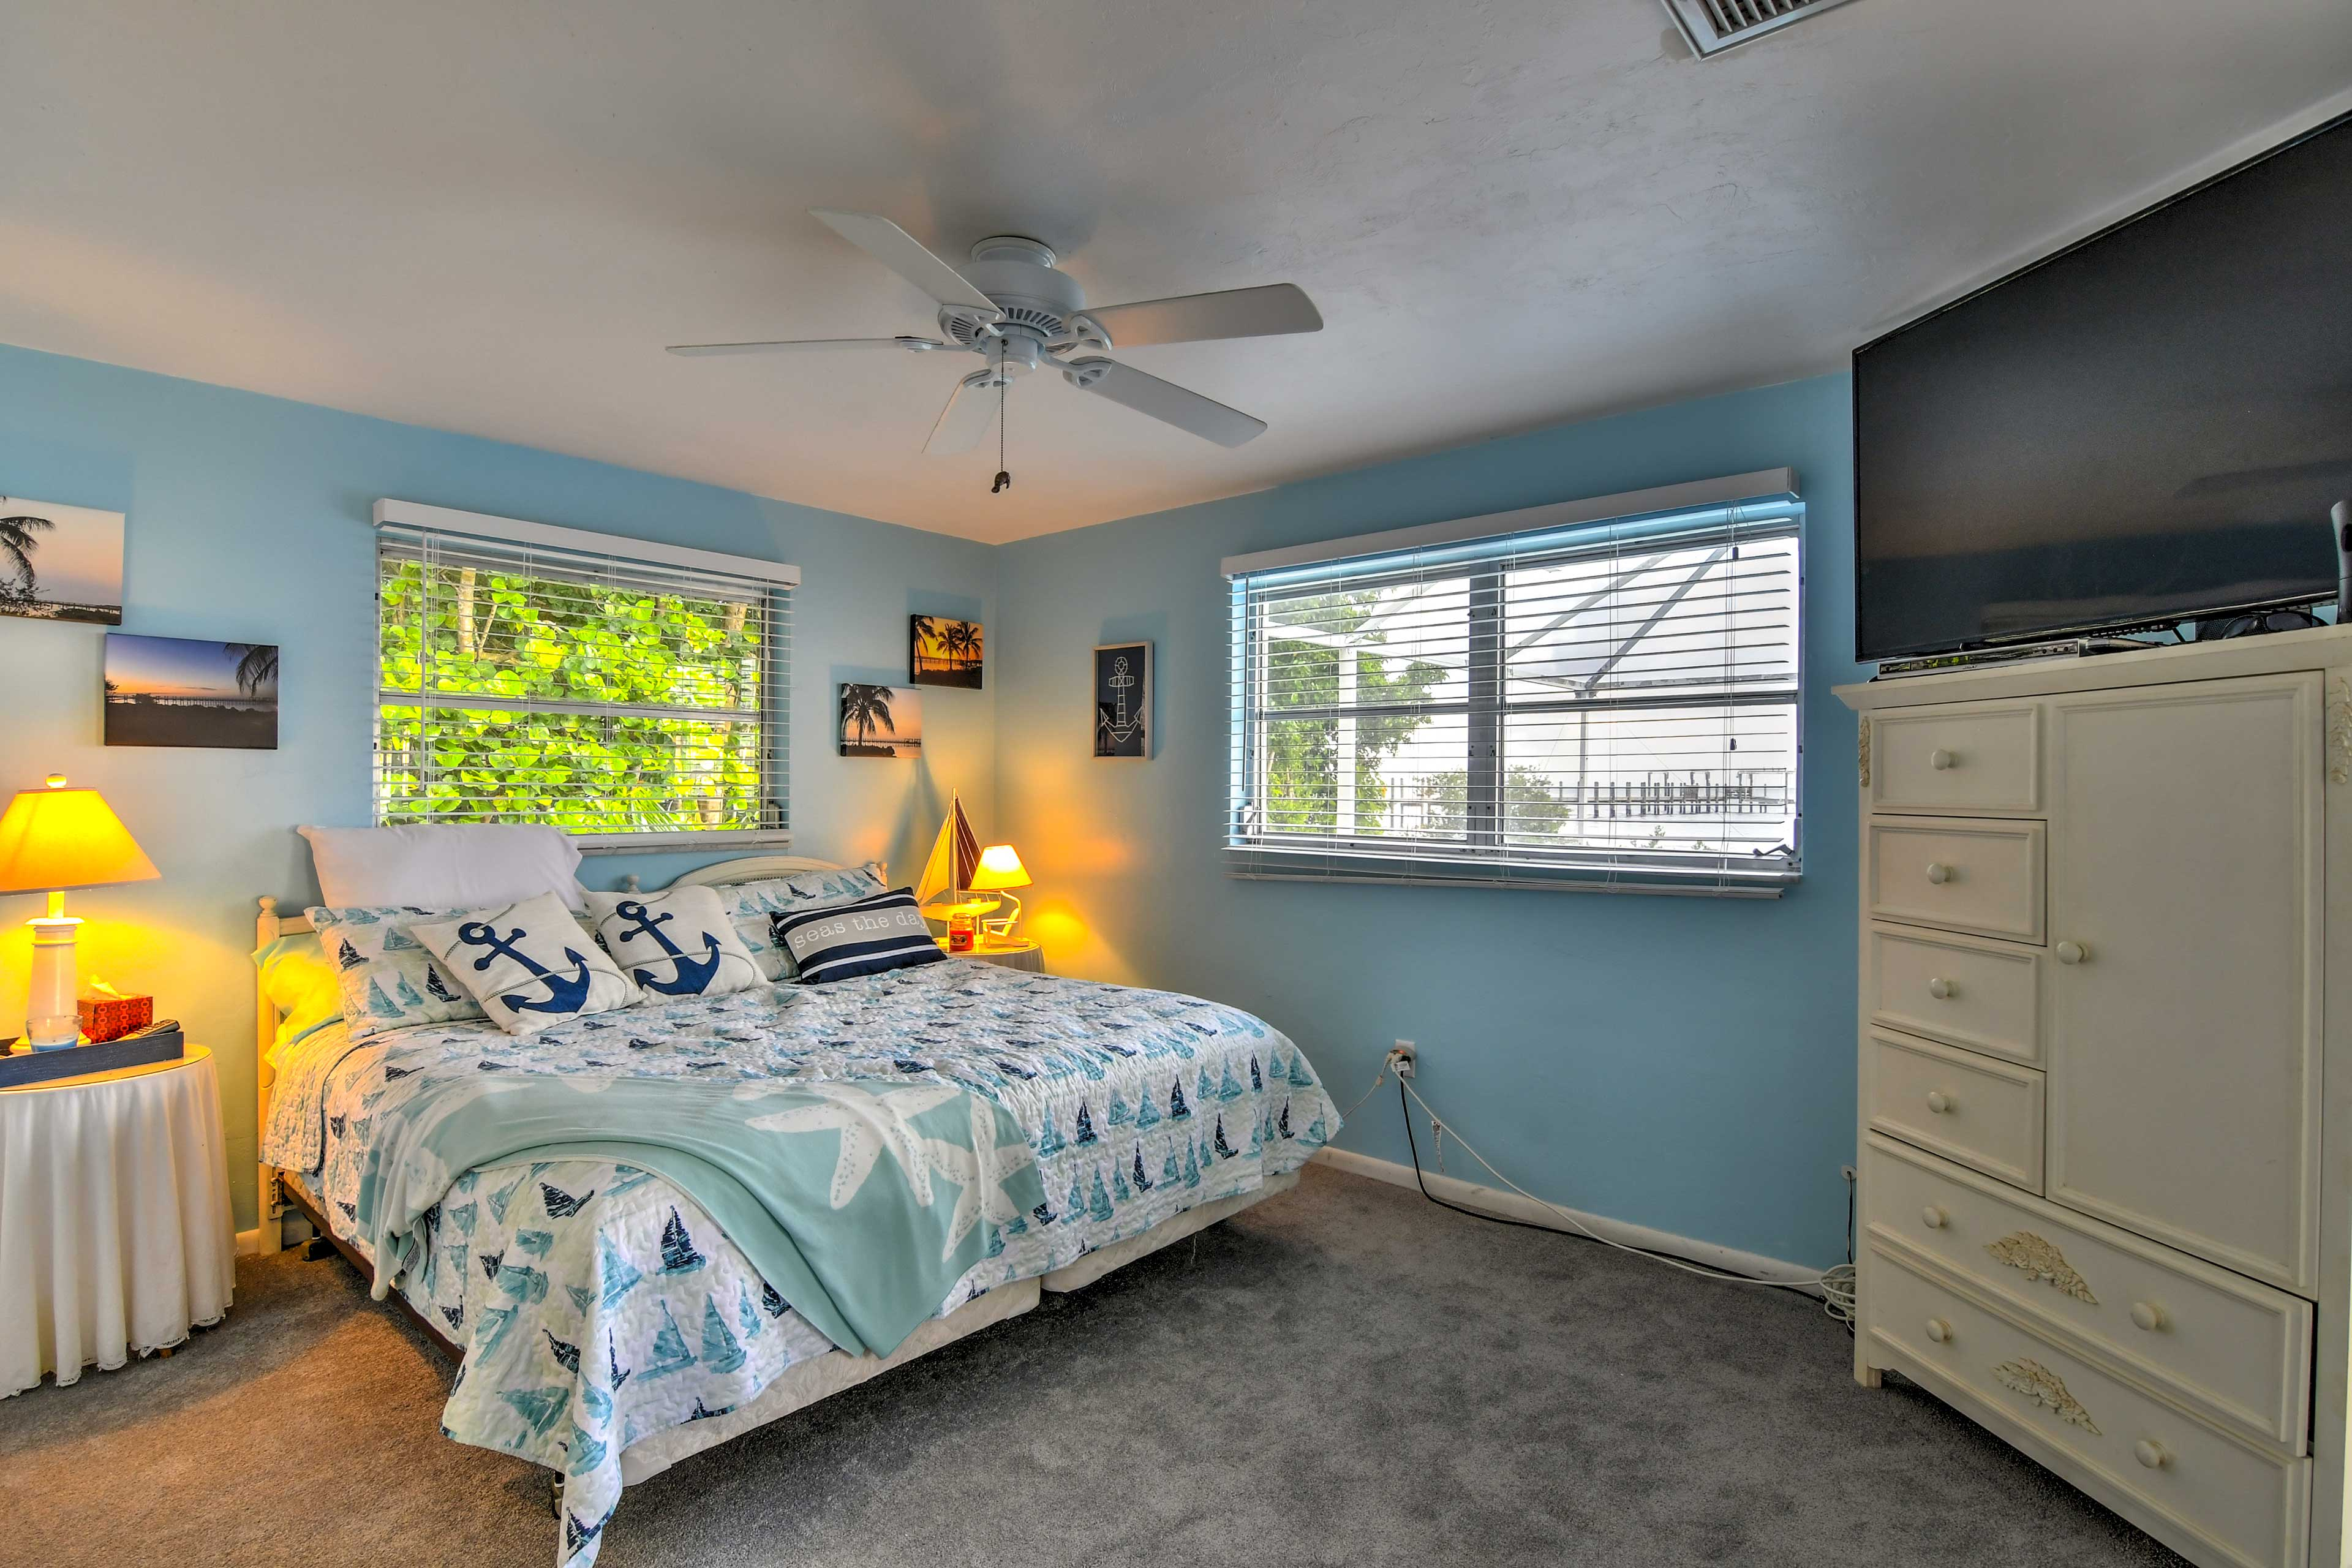 The master bedroom offers a cozy king mattress and nautical accents.